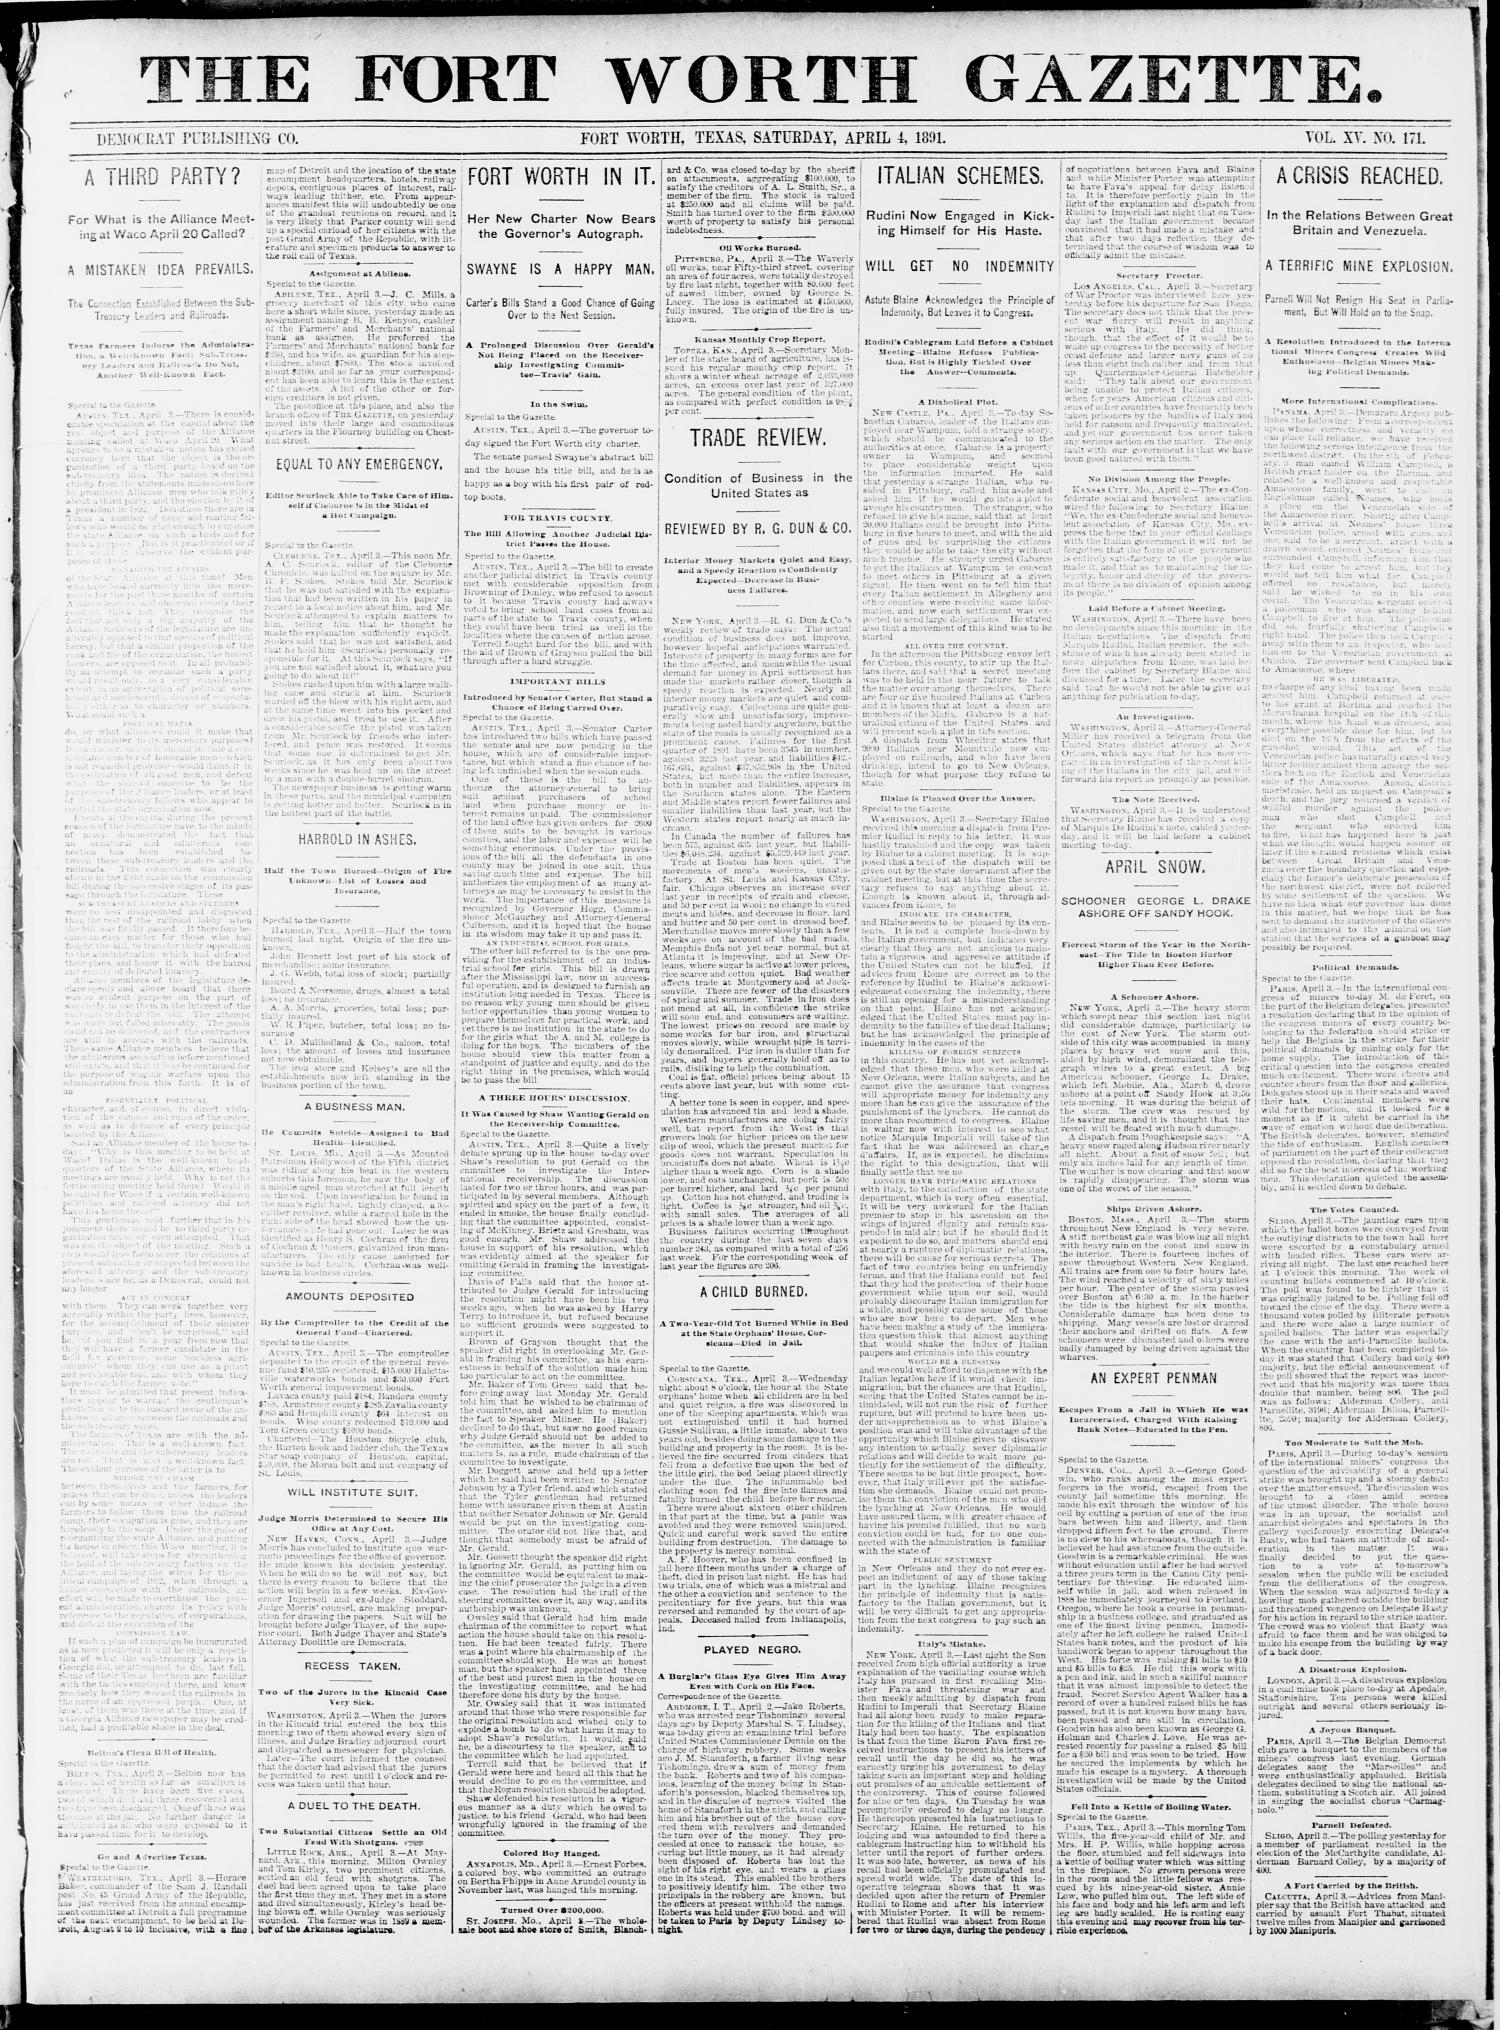 Fort Worth Gazette. (Fort Worth, Tex.), Vol. 15, No. 171, Ed. 1, Saturday, April 4, 1891                                                                                                      [Sequence #]: 1 of 8